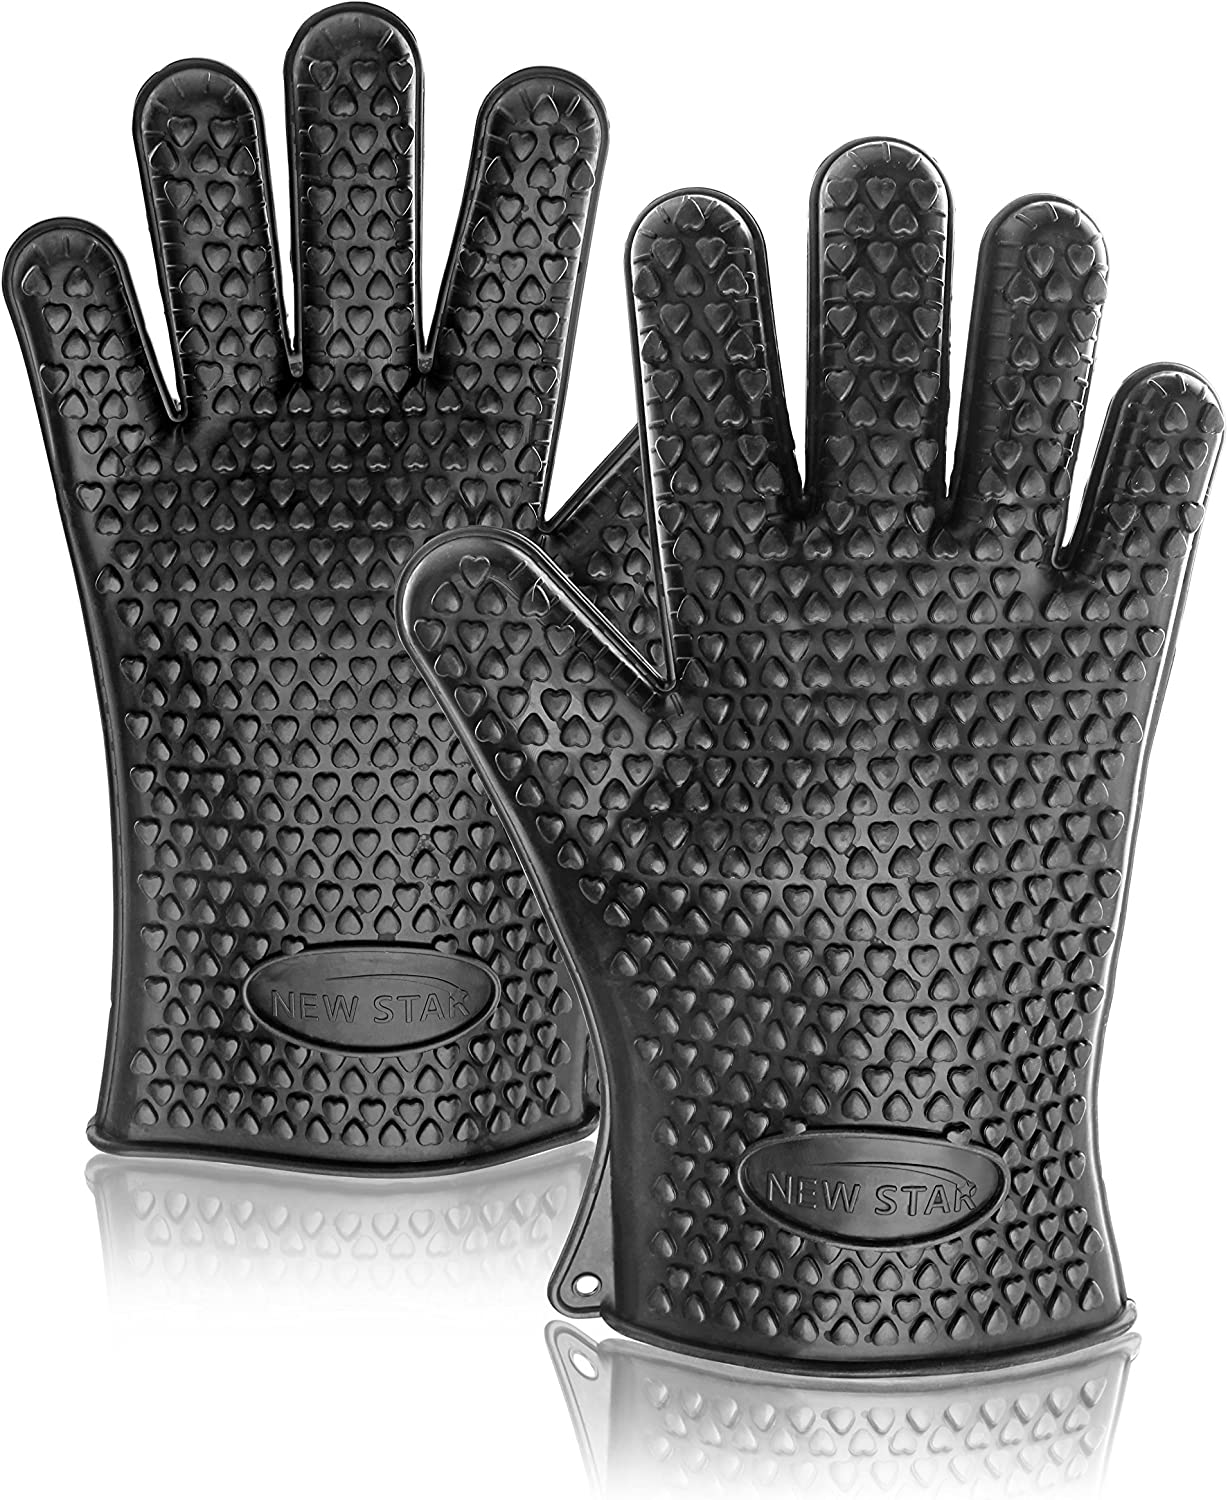 New Star Foodservice 32383 Commercial Grade Silicone Oven Mitts, Black, Set of 2